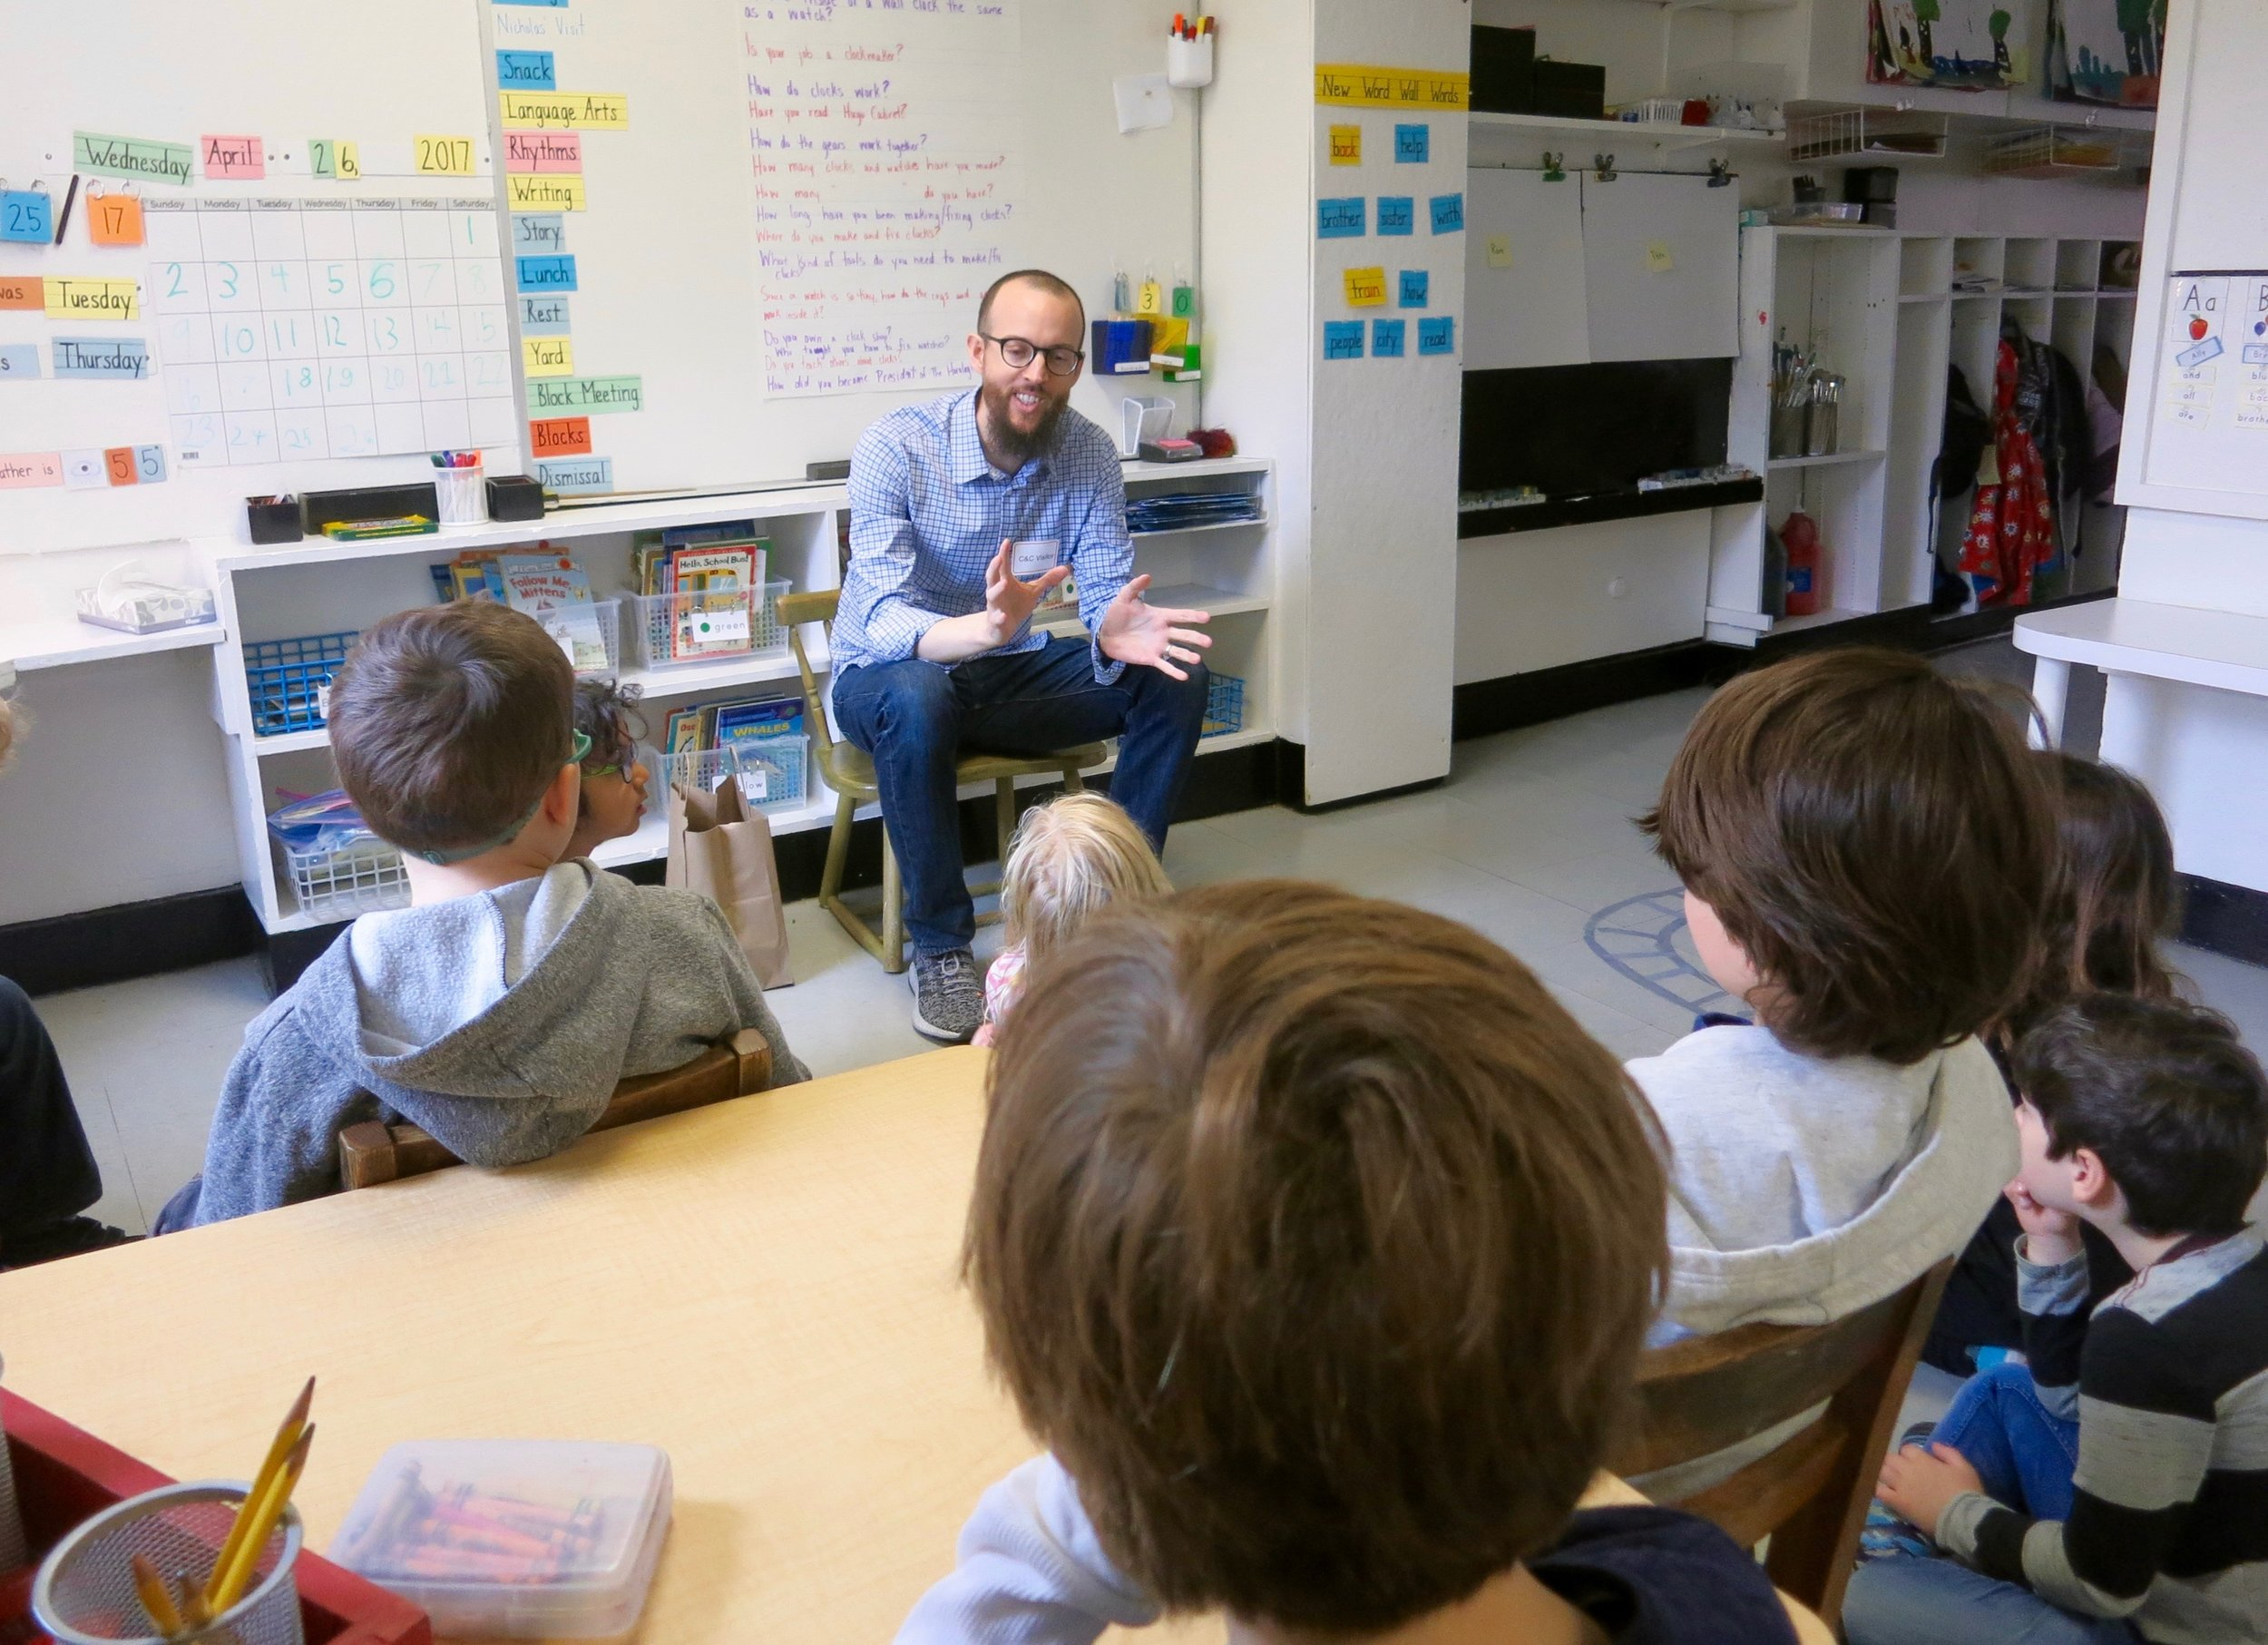 HSNY President Nicholas Manousos speaking to first grade students at a school in Manhattan